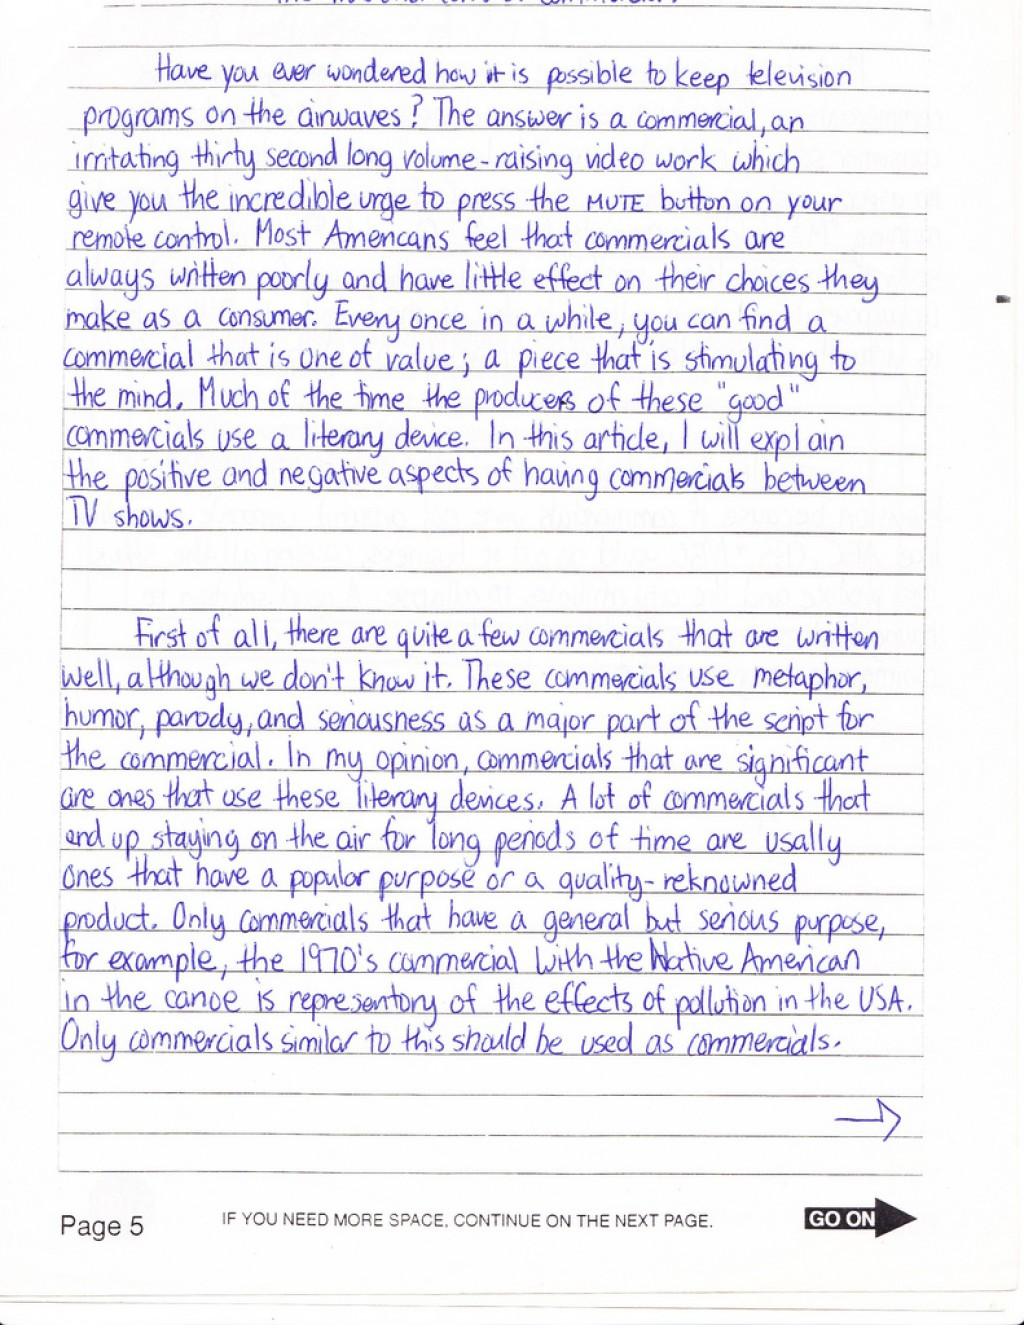 003 Essay Example How To Write Sat Average Fantastic A New Format Good Introduction Large